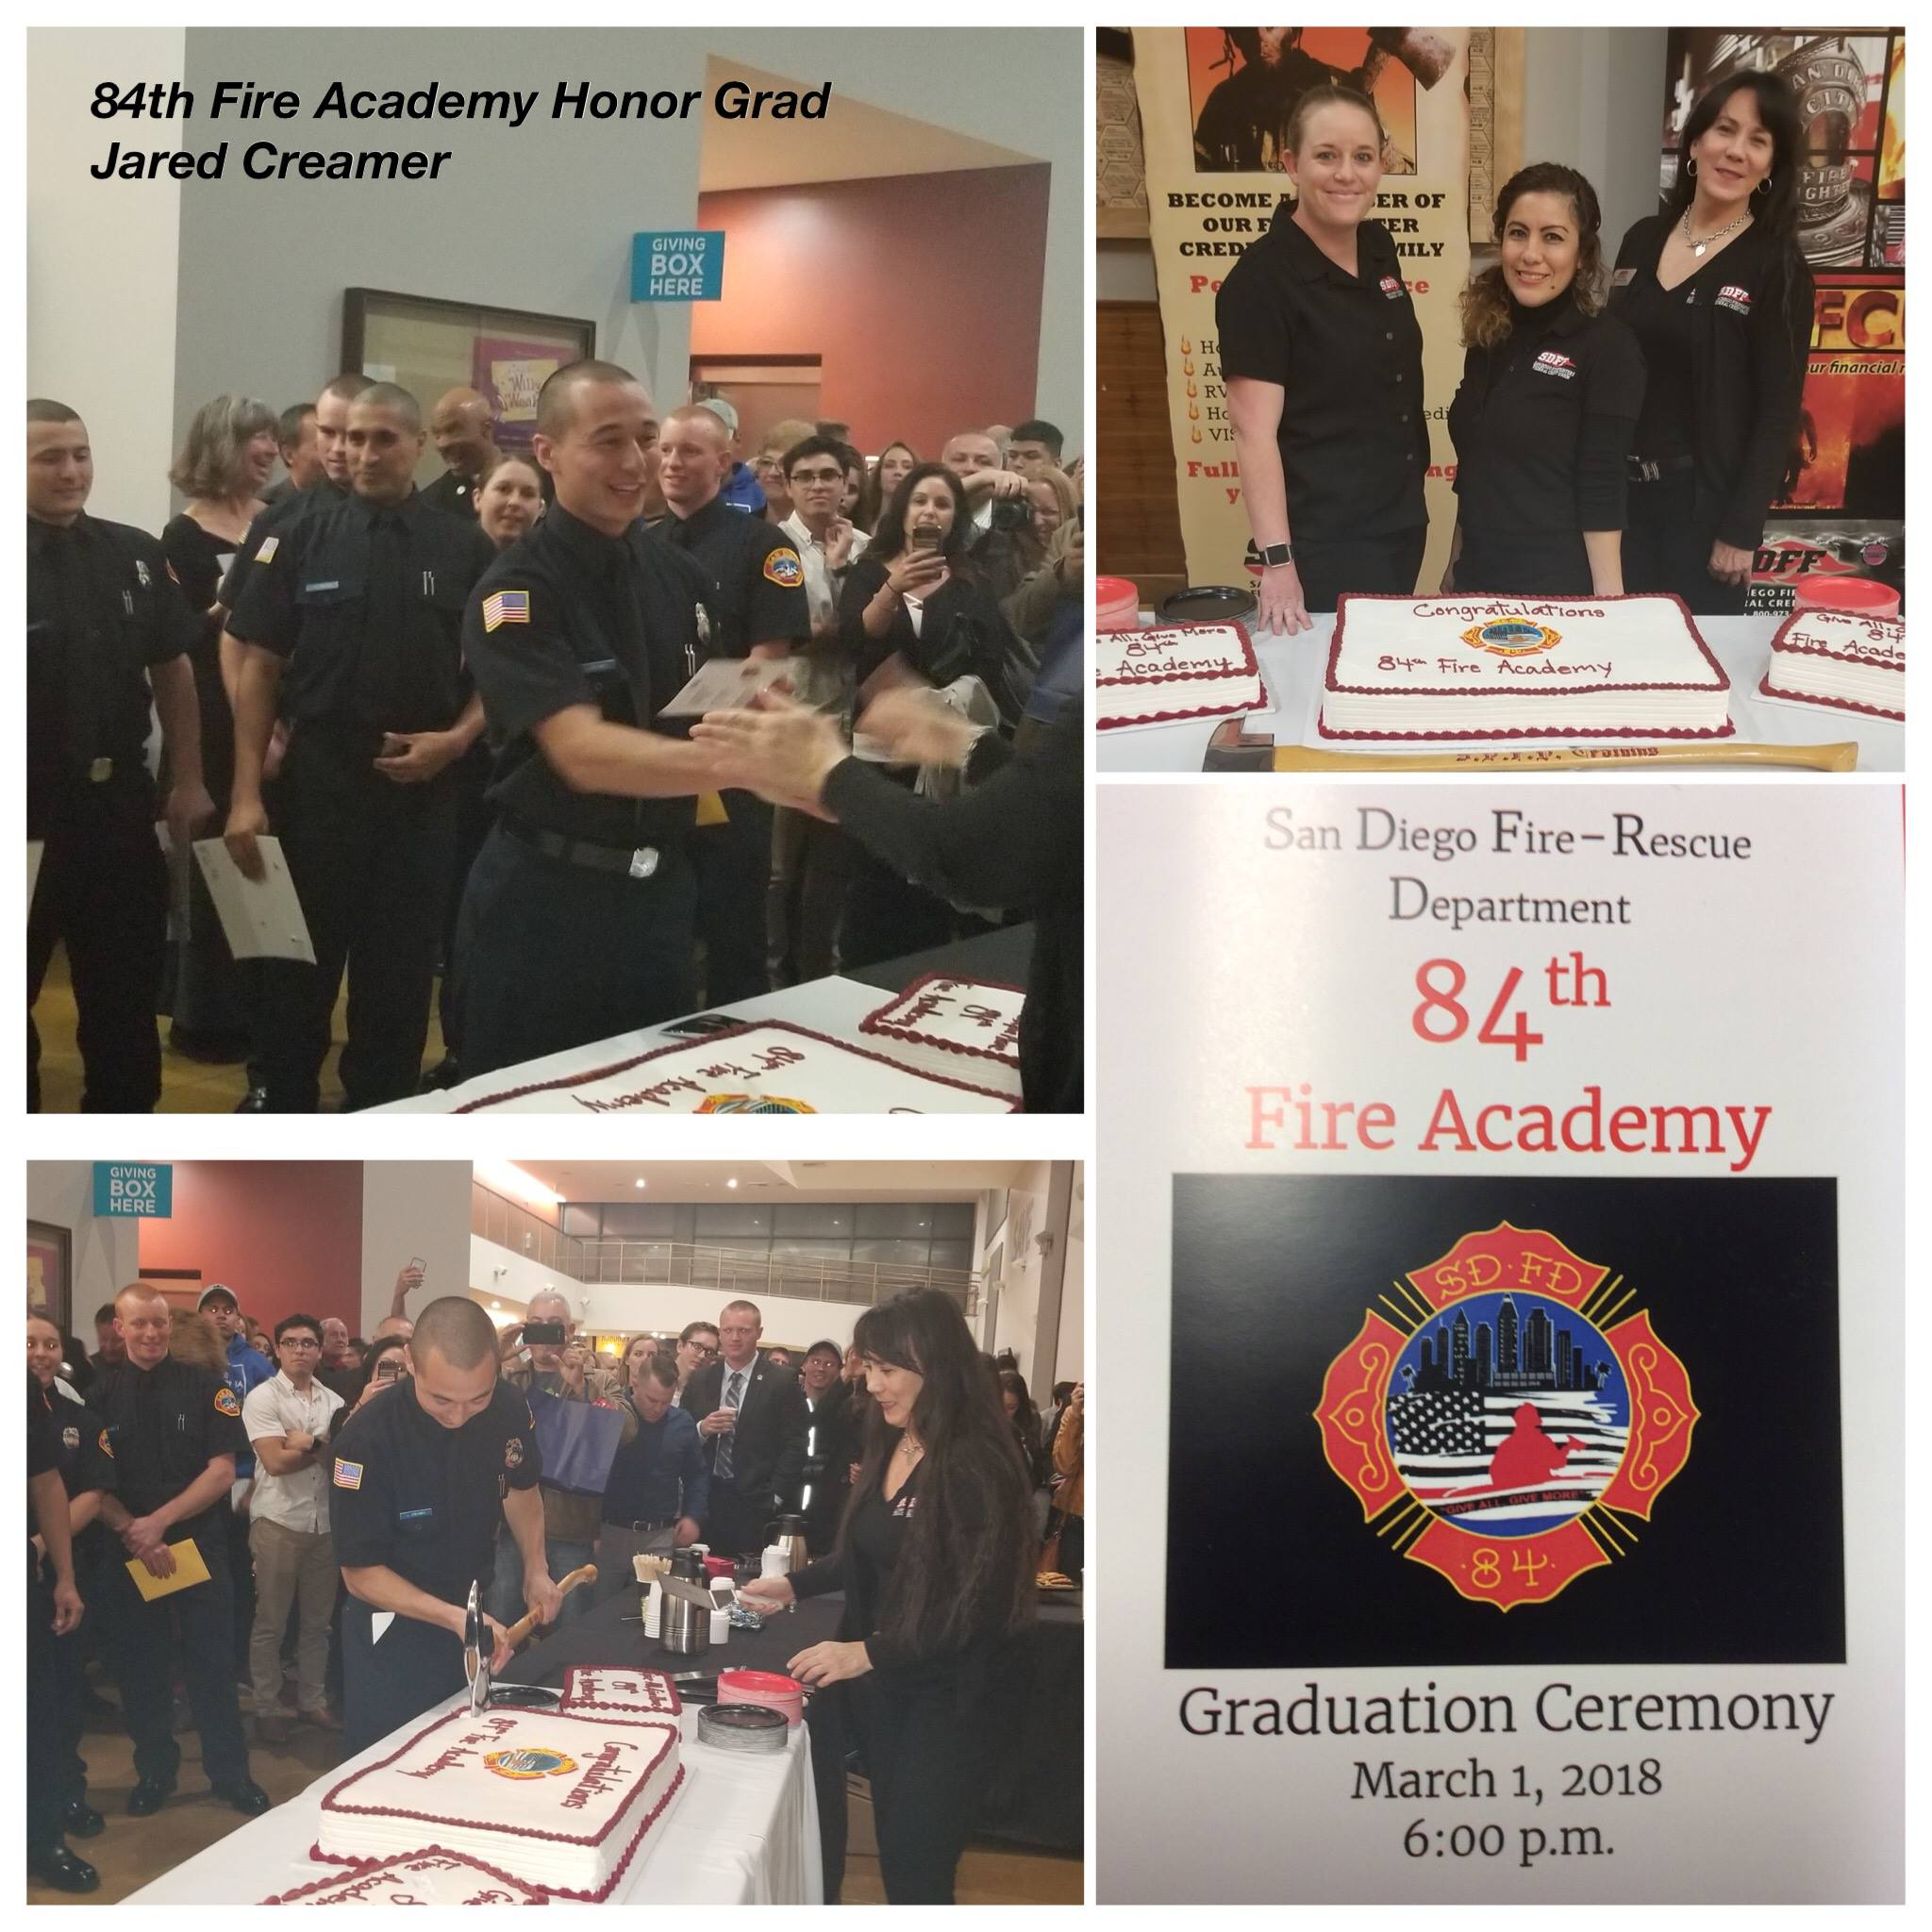 84th Fire Academy Graduation